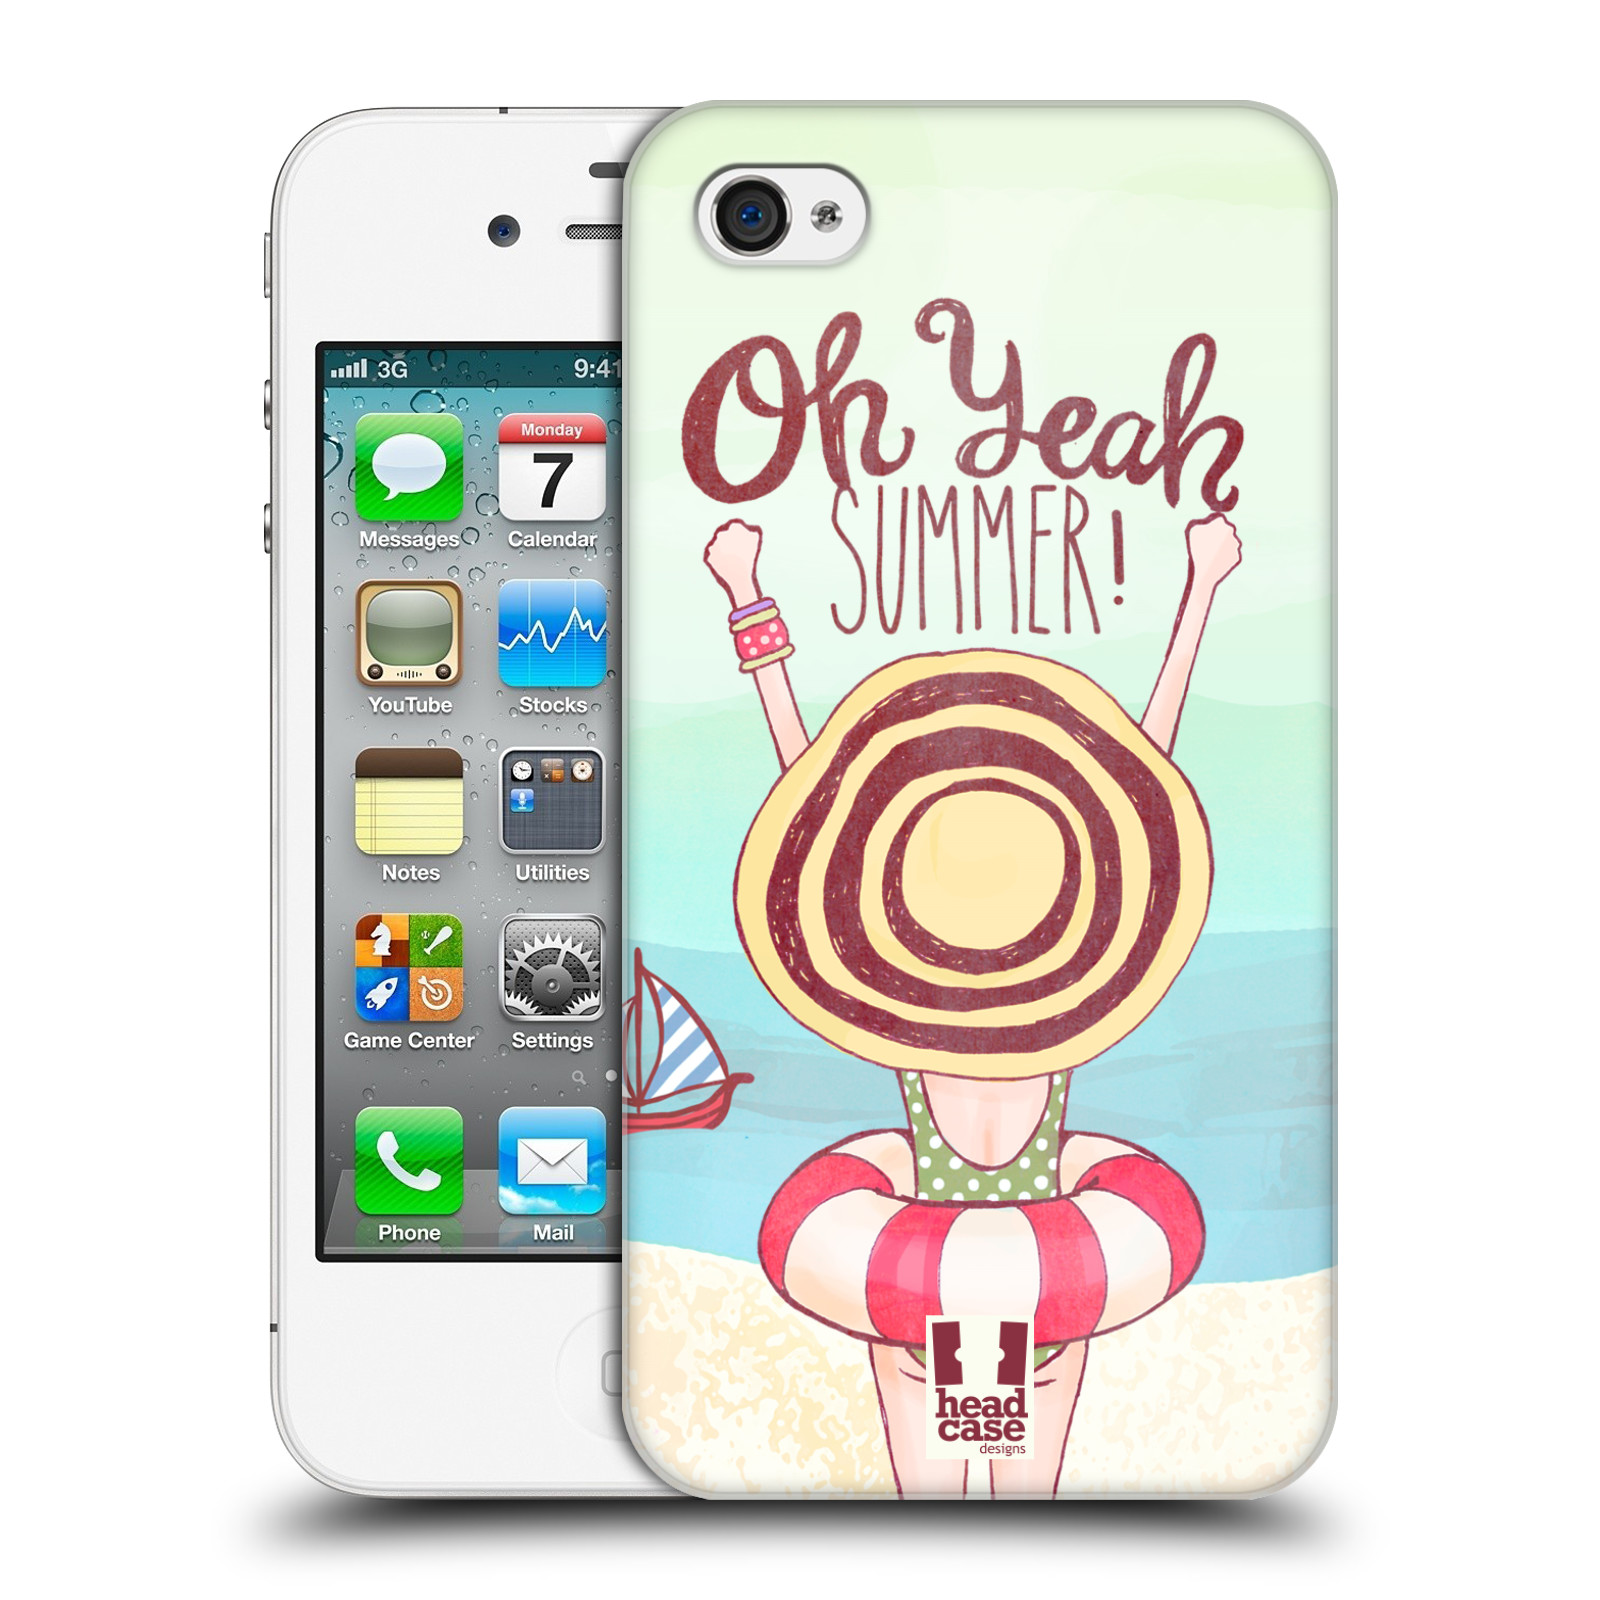 HEAD CASE DESIGNS KIND OF SUMMER CASE COVER FOR APPLE iPHONE 4 4S